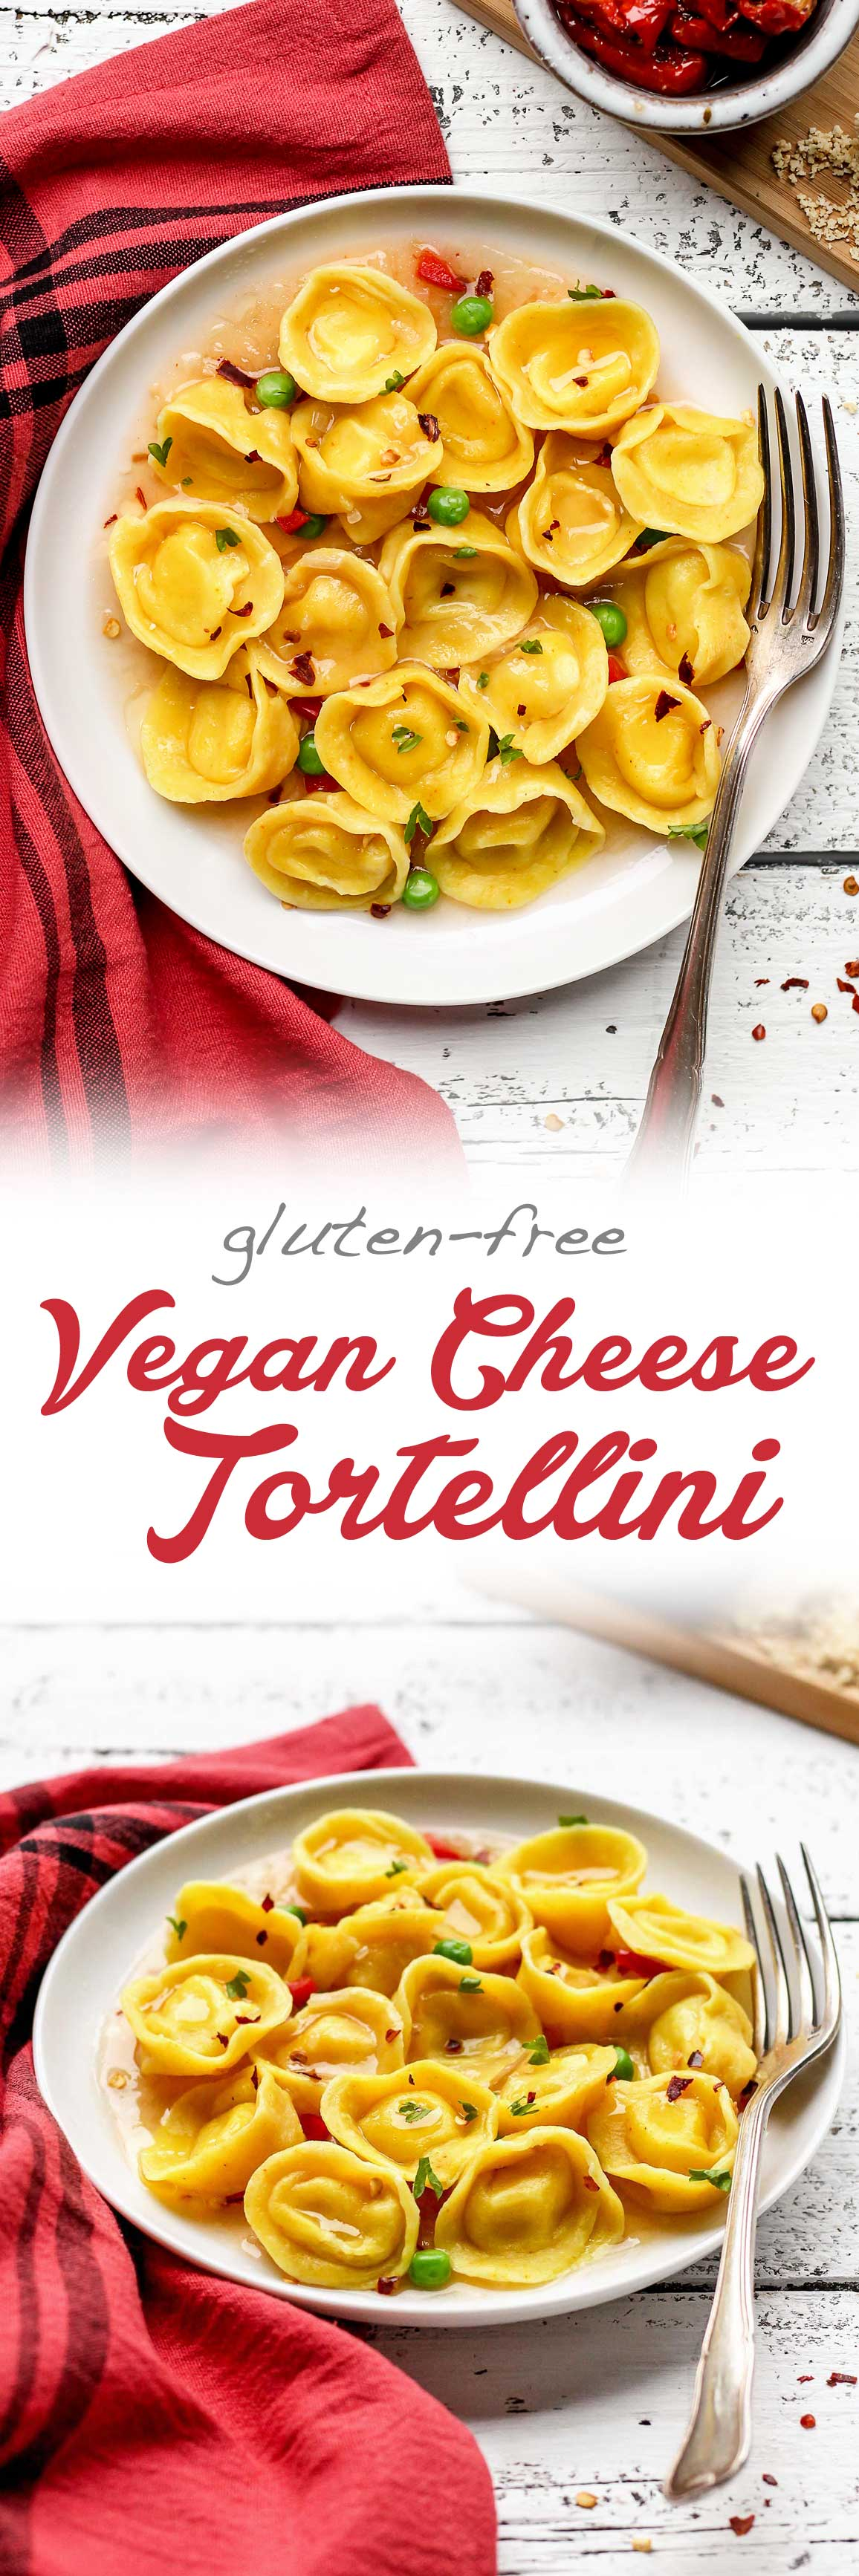 Vegan Cheese and Basil Tortellini